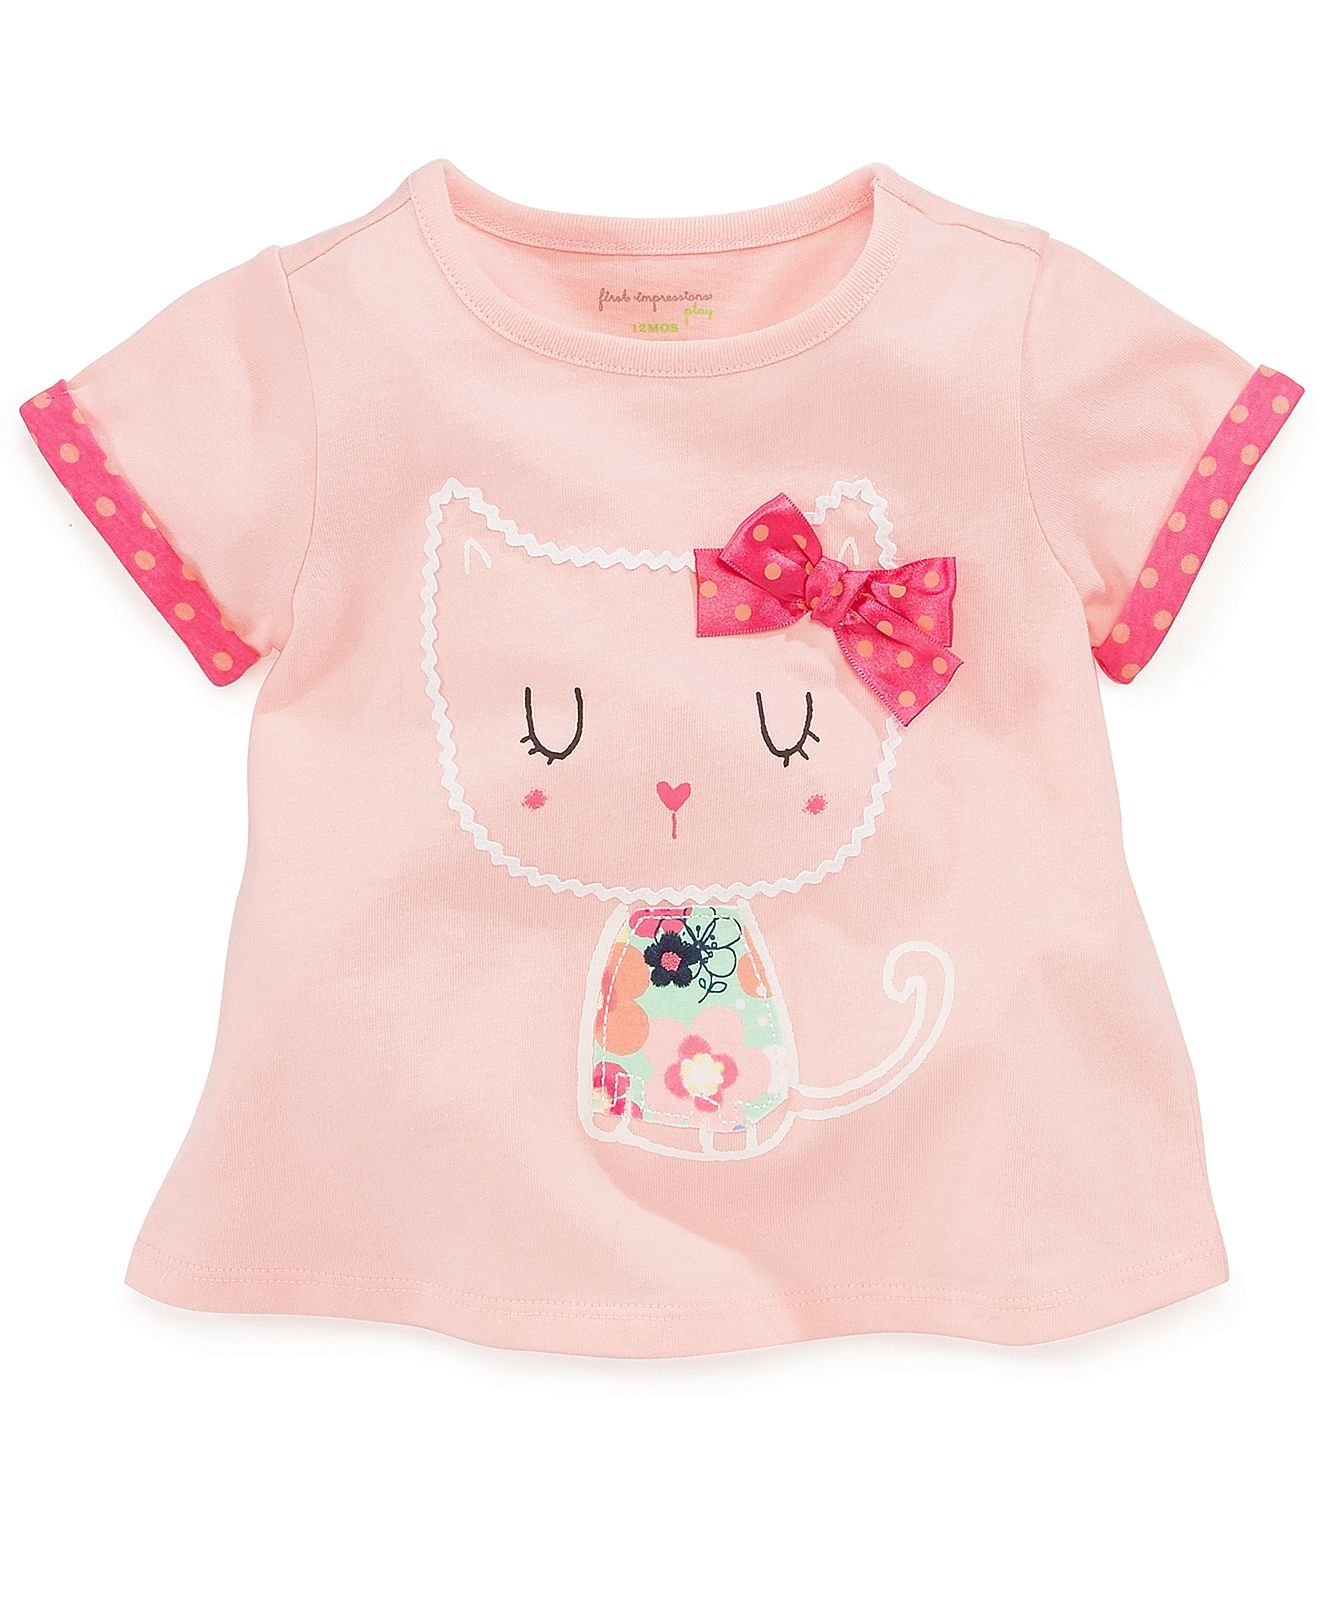 First Impressions Baby Girls Graphic Top Kids First Impressions